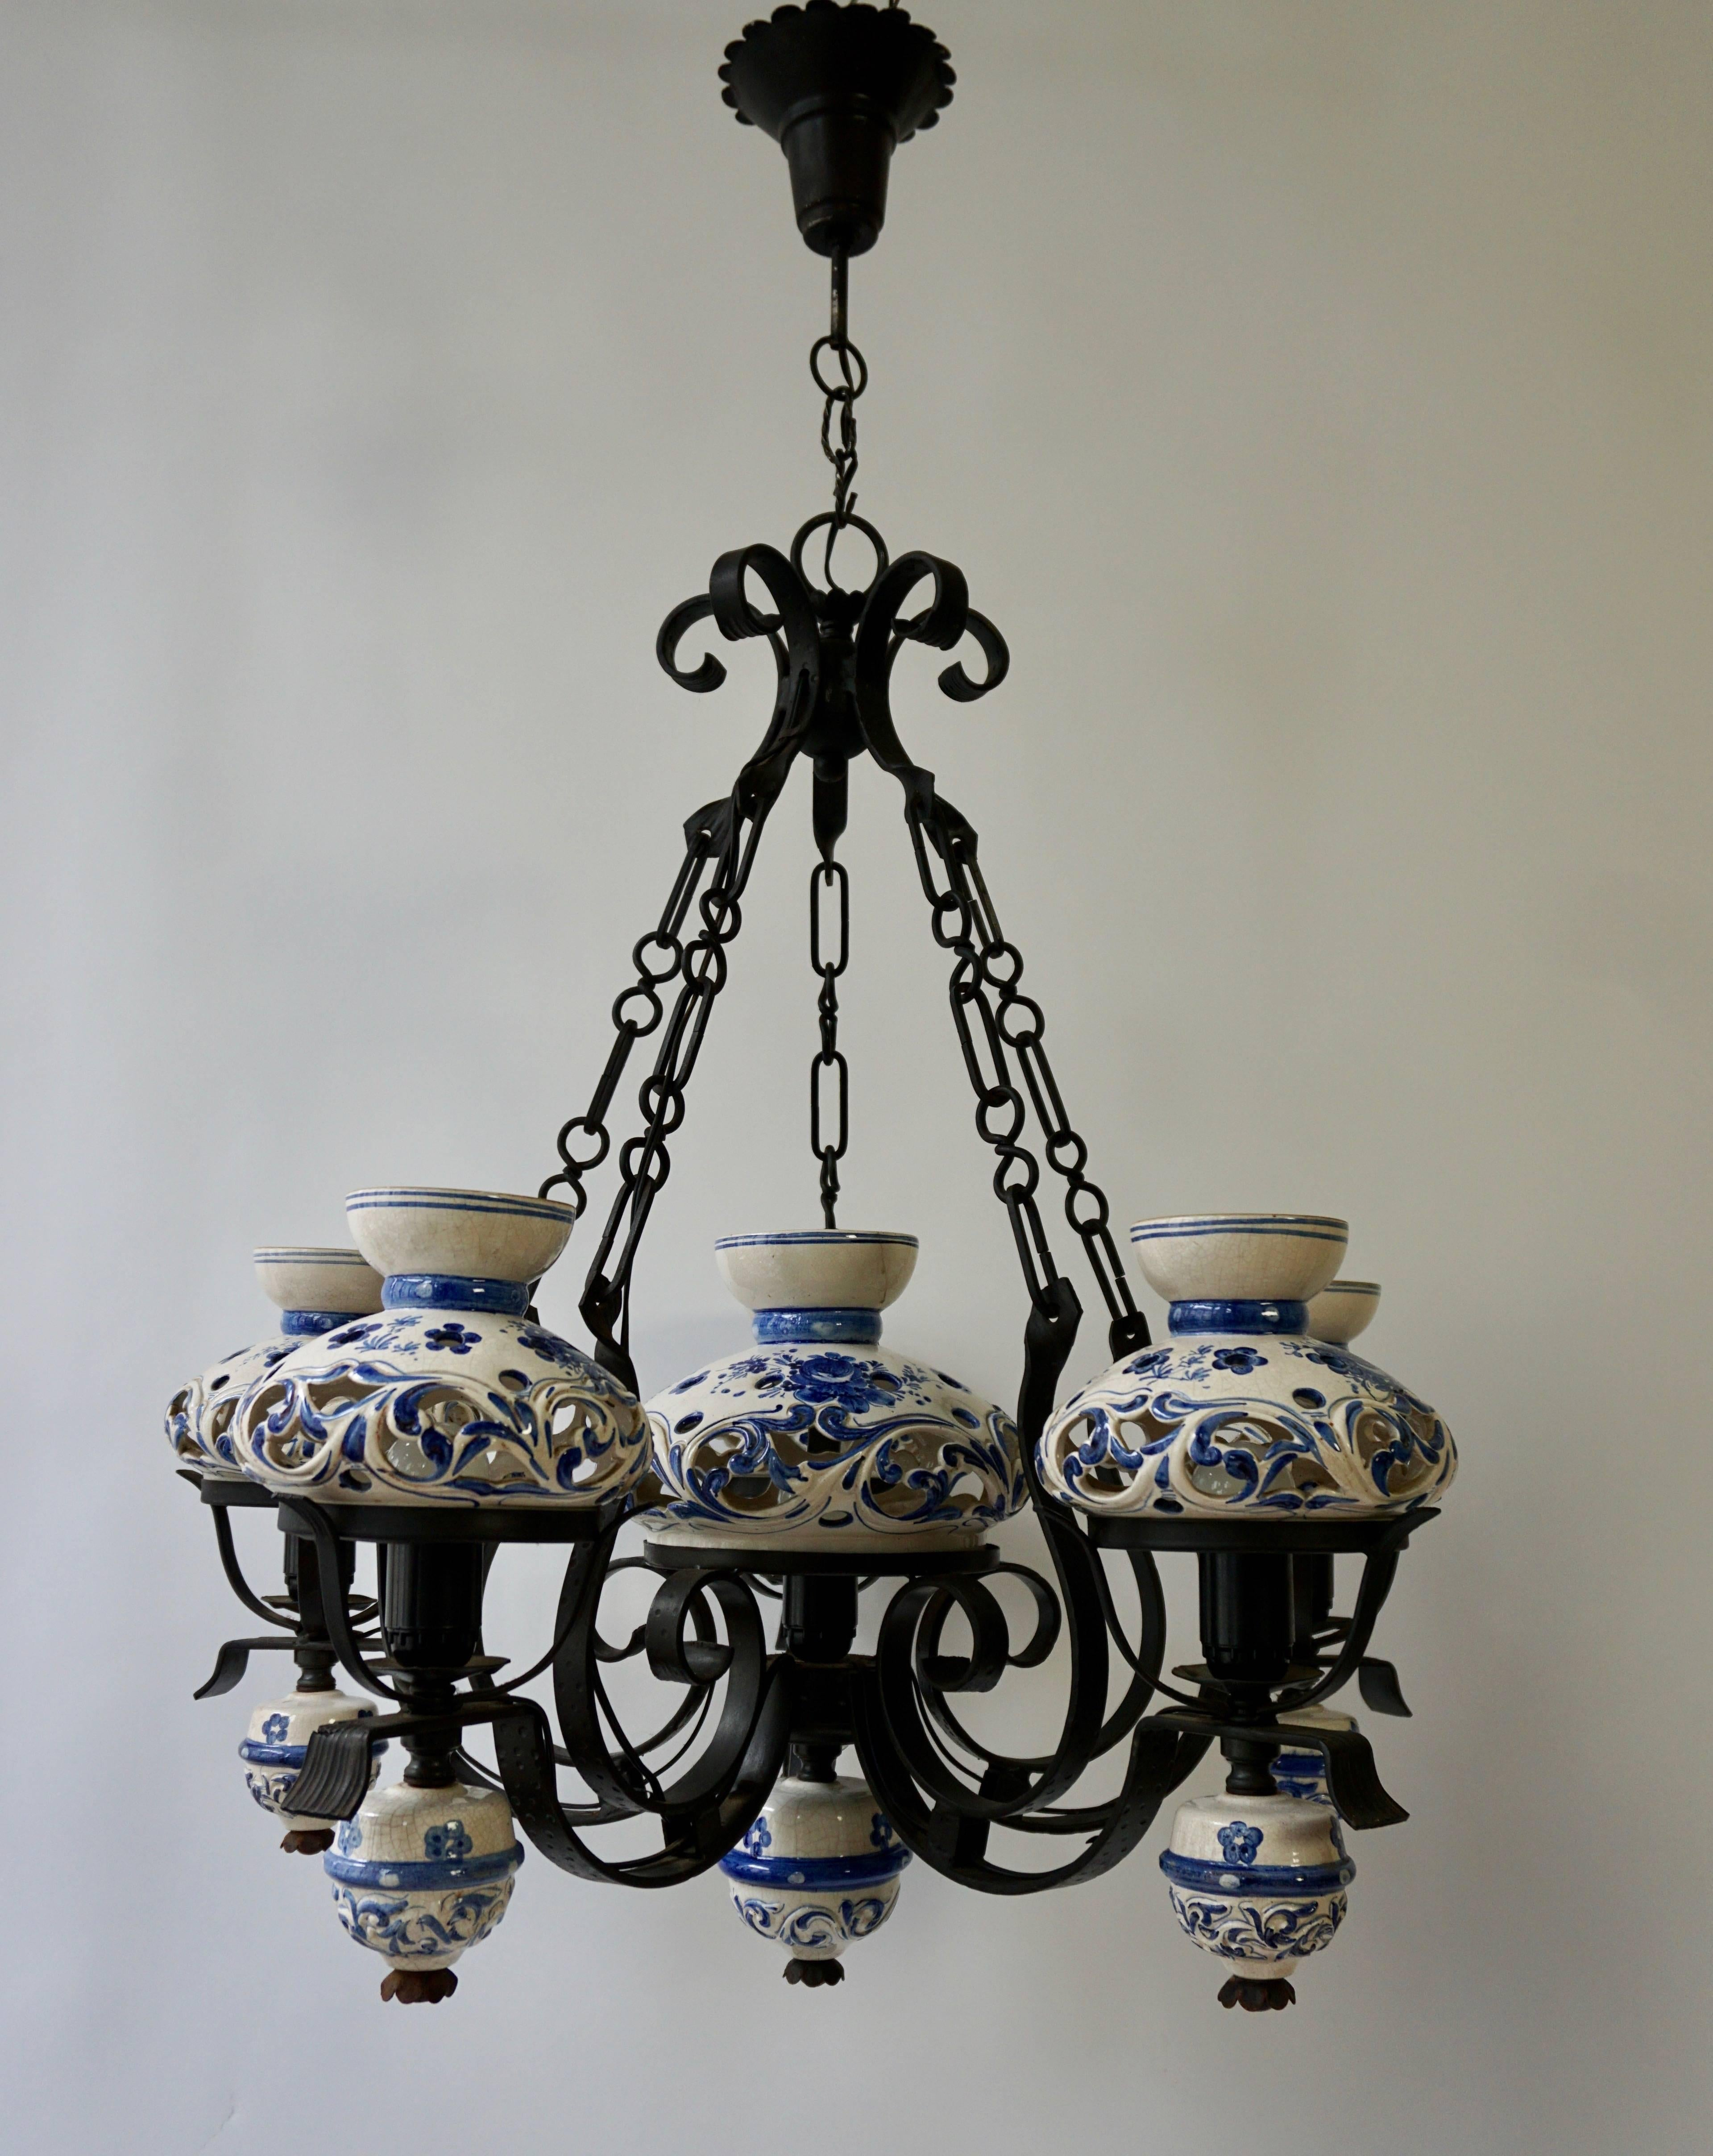 Unique And Beautiful Antique Delft Blue Oil Lamp Chandelier For At 1stdibs